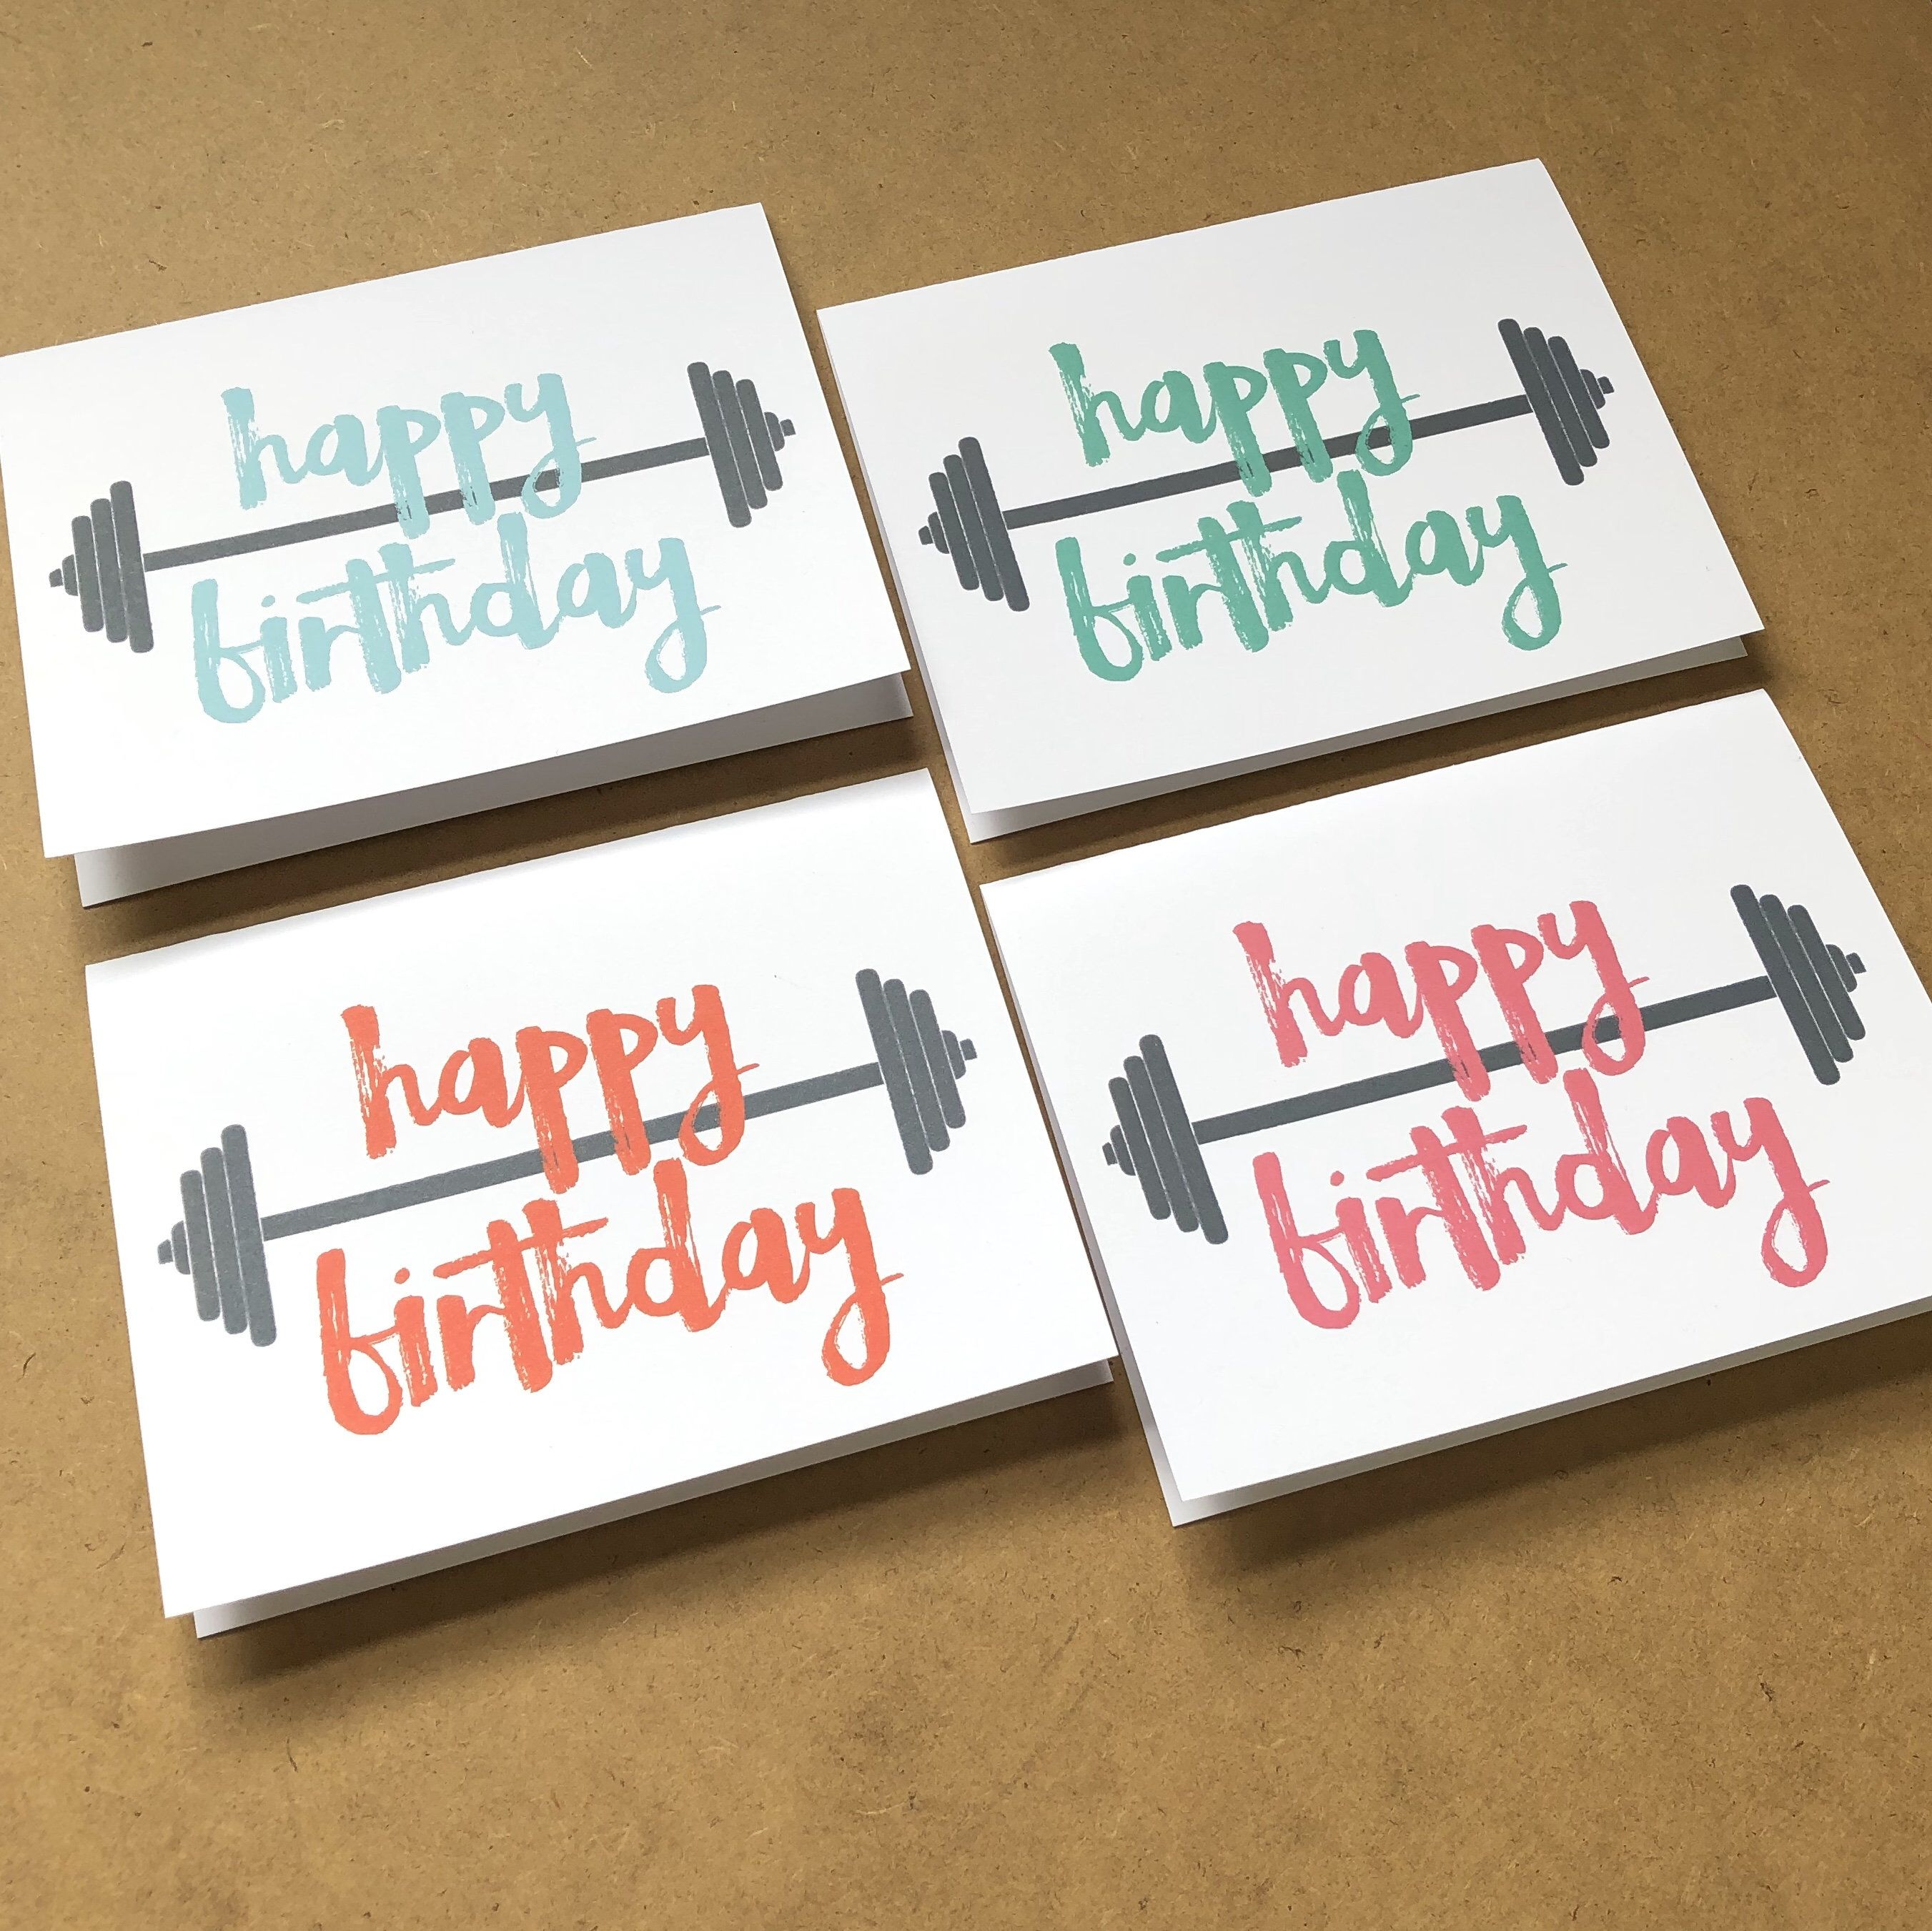 Personal Trainer Birthday Gifts Crossfit Birthday Gift For Men